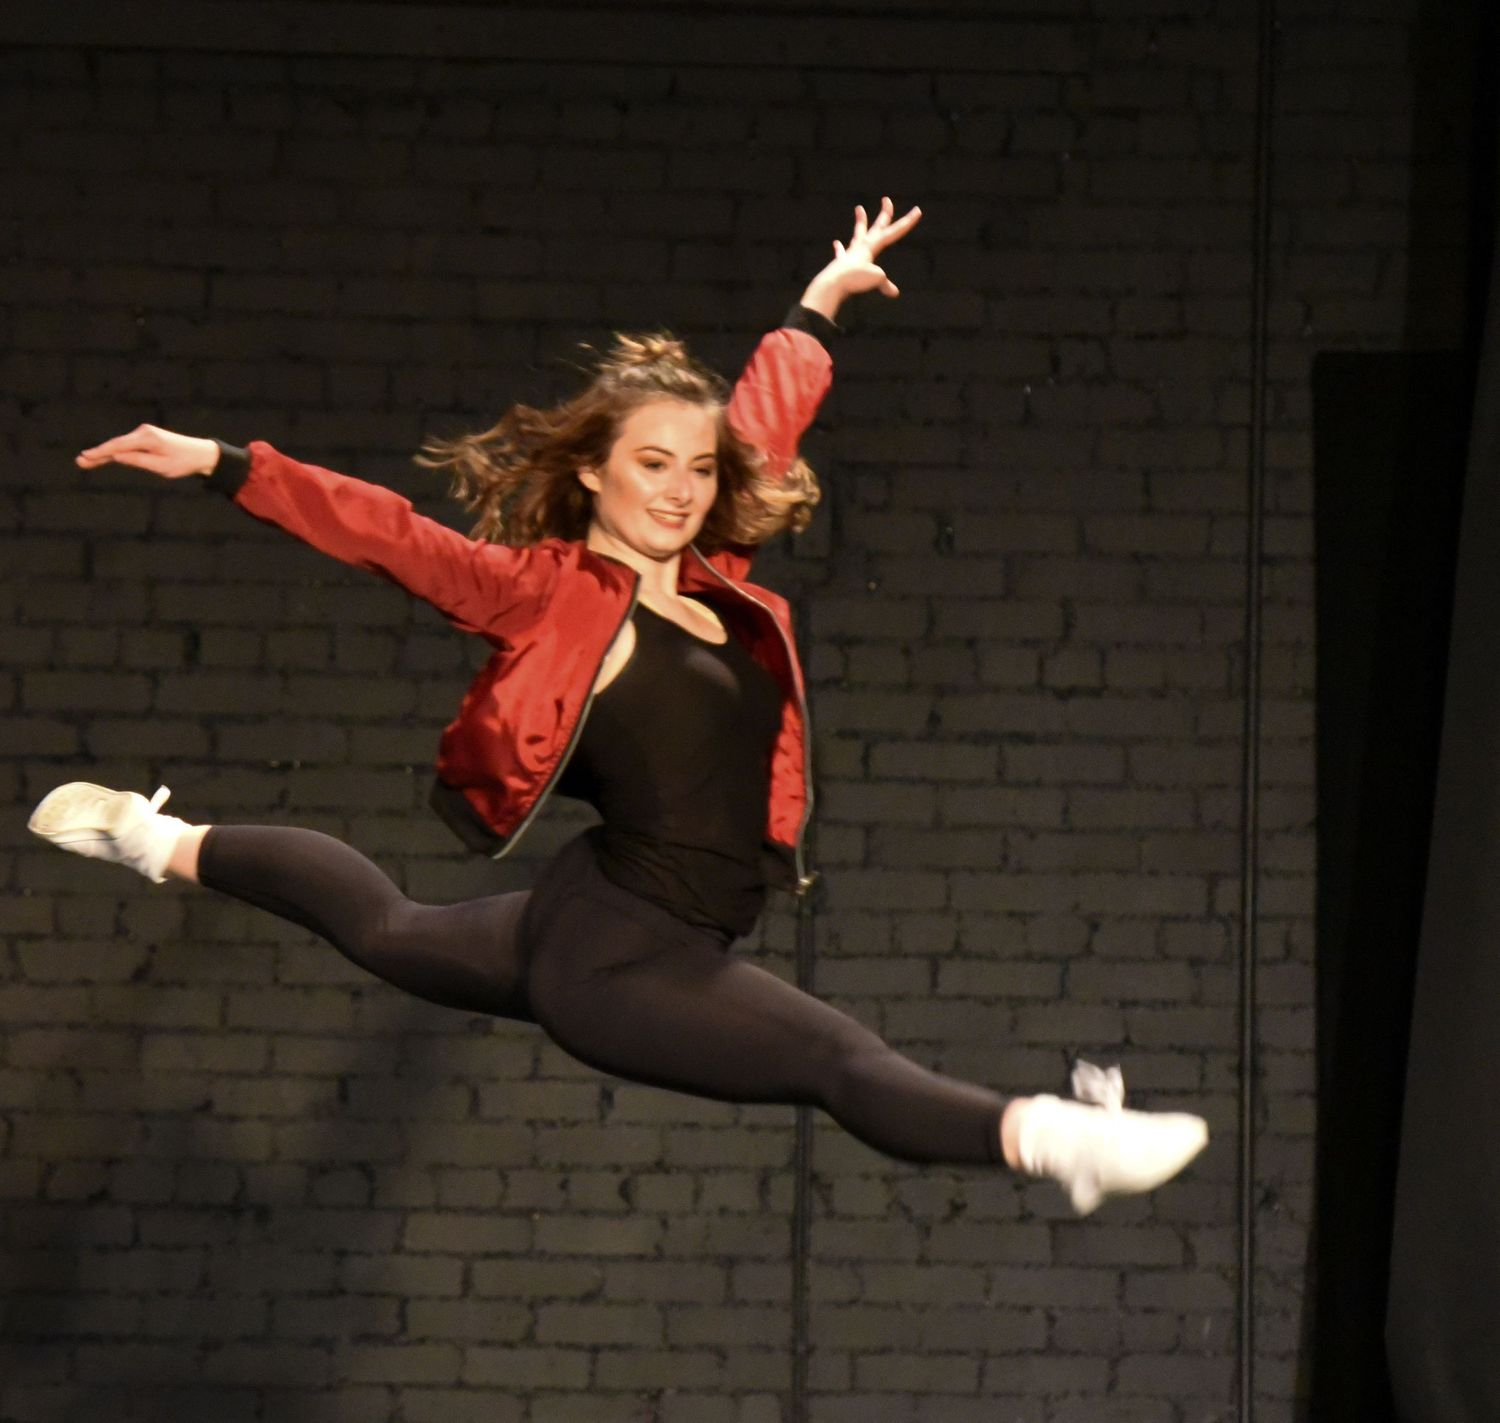 Dancer Leaping on stage